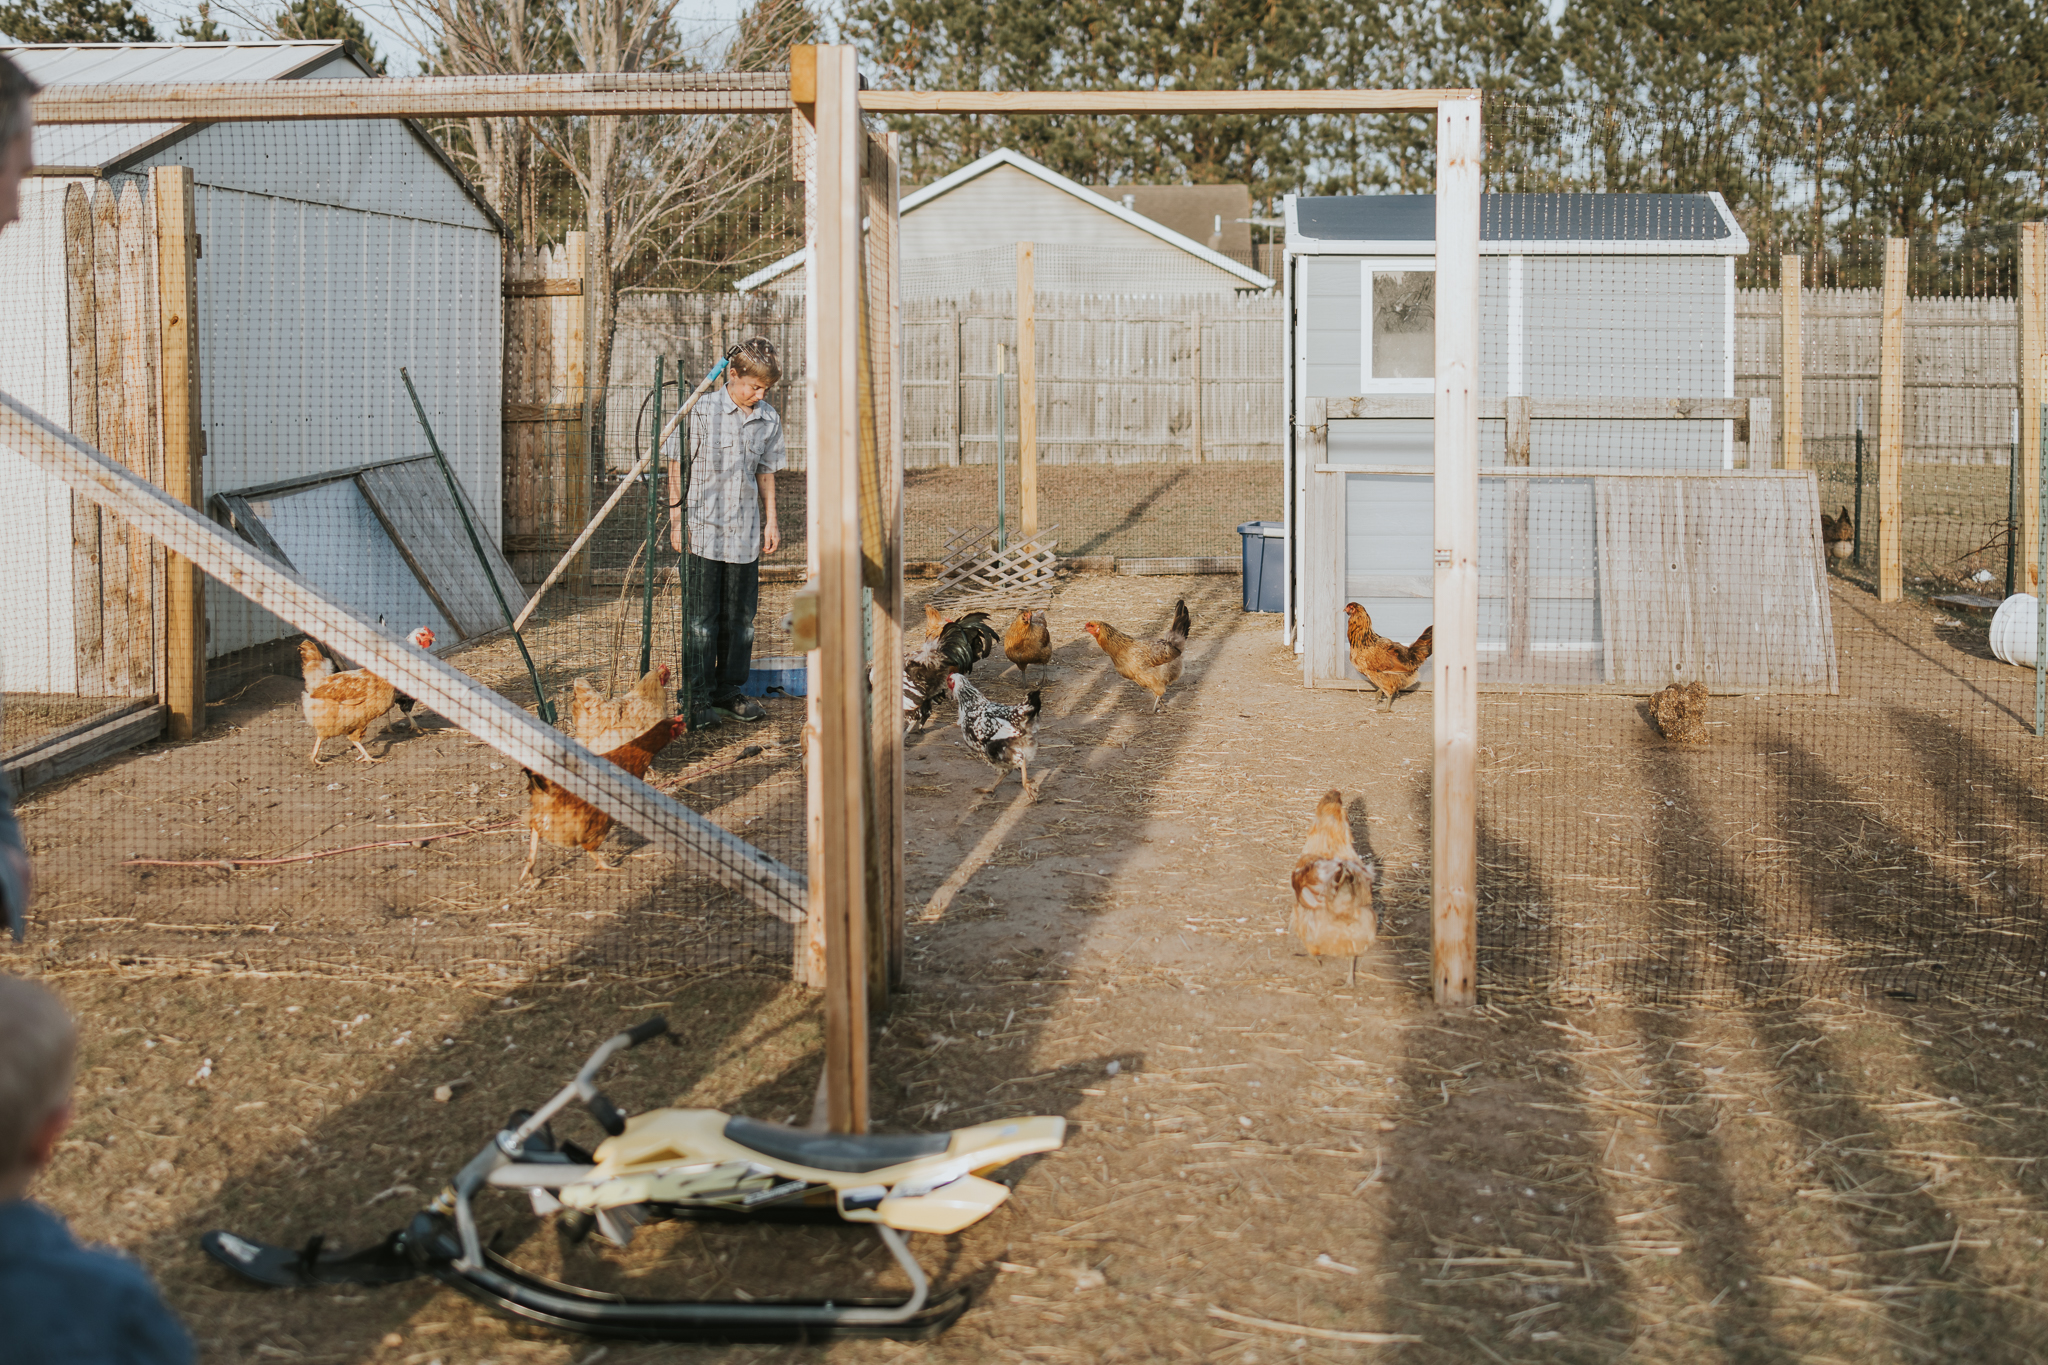 chicken coop with a little boy and chickens - Minnesota Family Photography